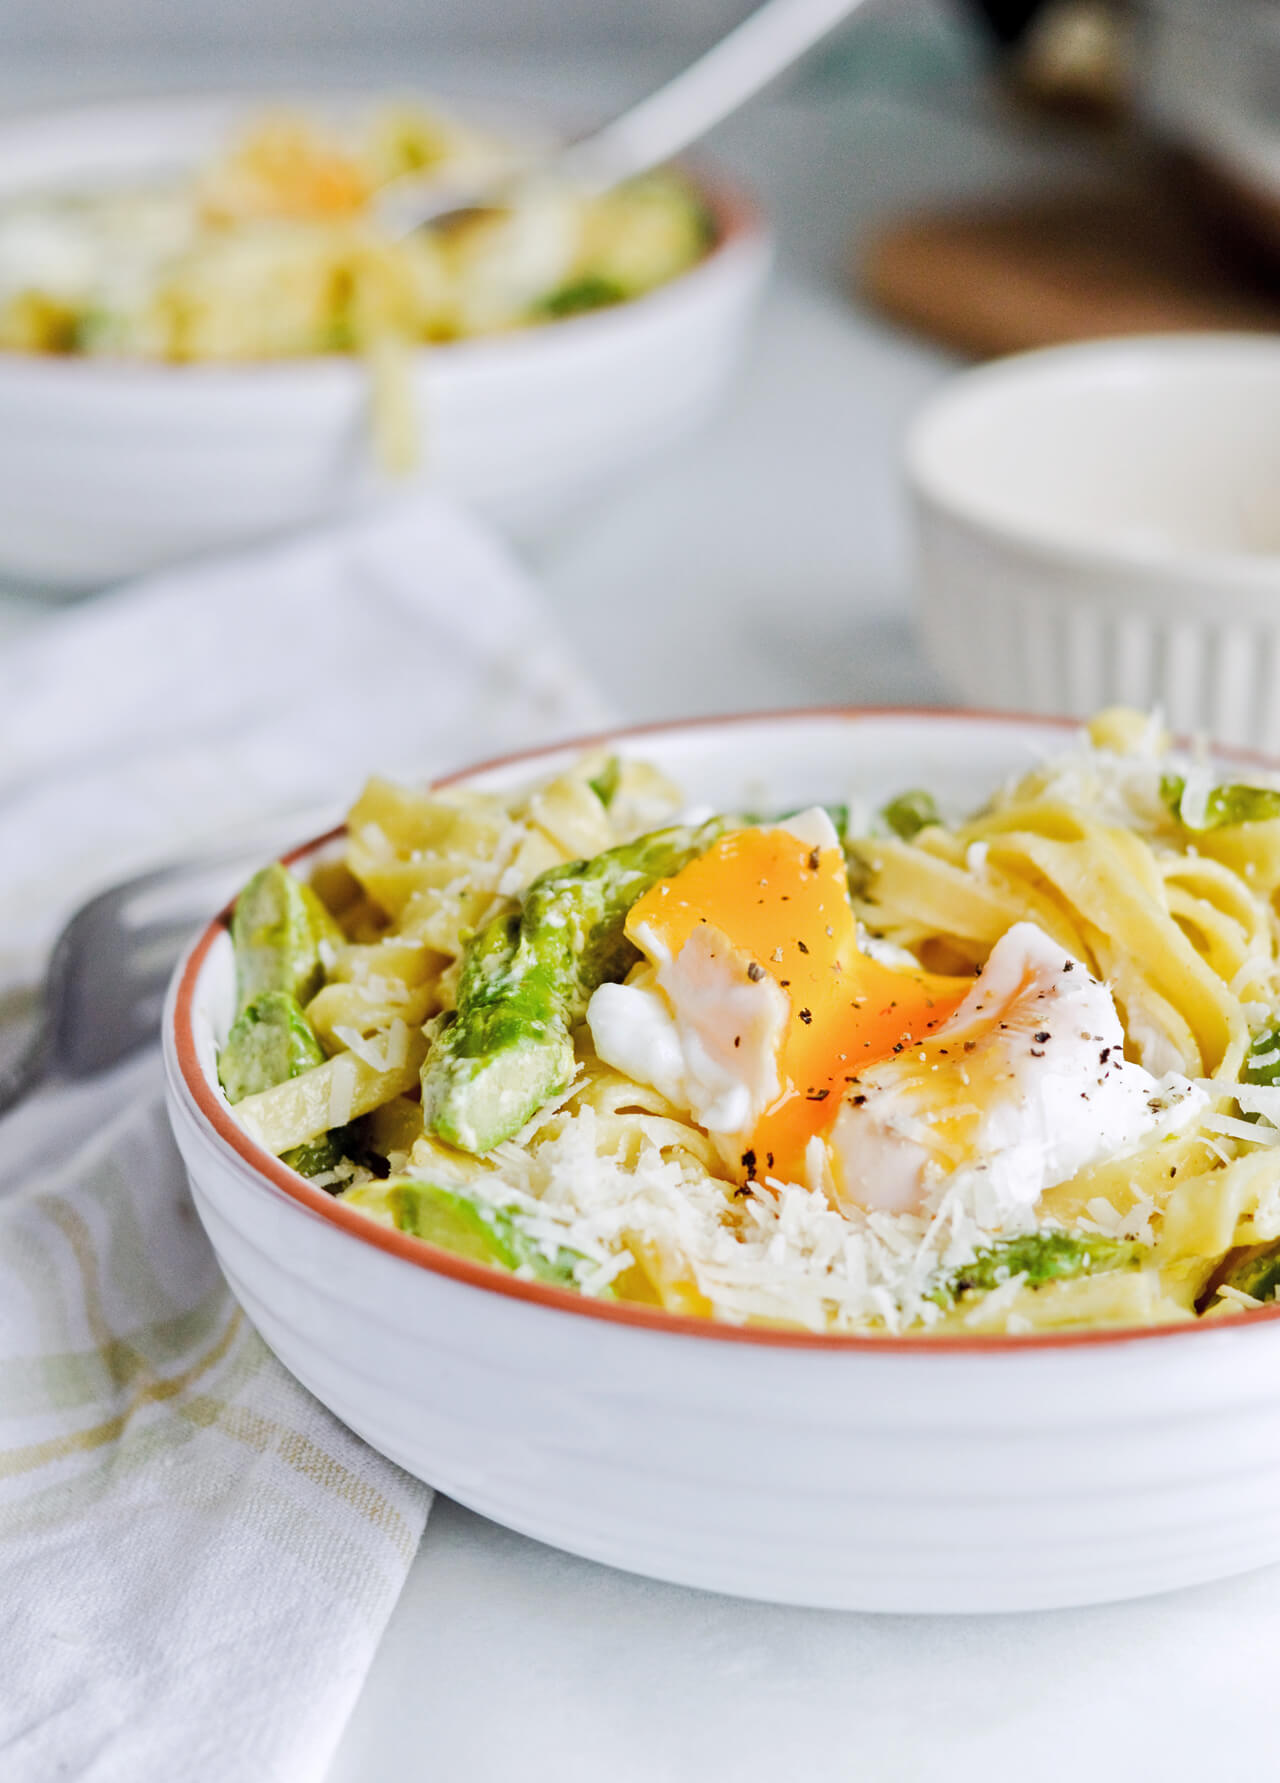 Creamy asparagus tagliatelle with poached eggs - a quick and wonderful asparagus dinner.